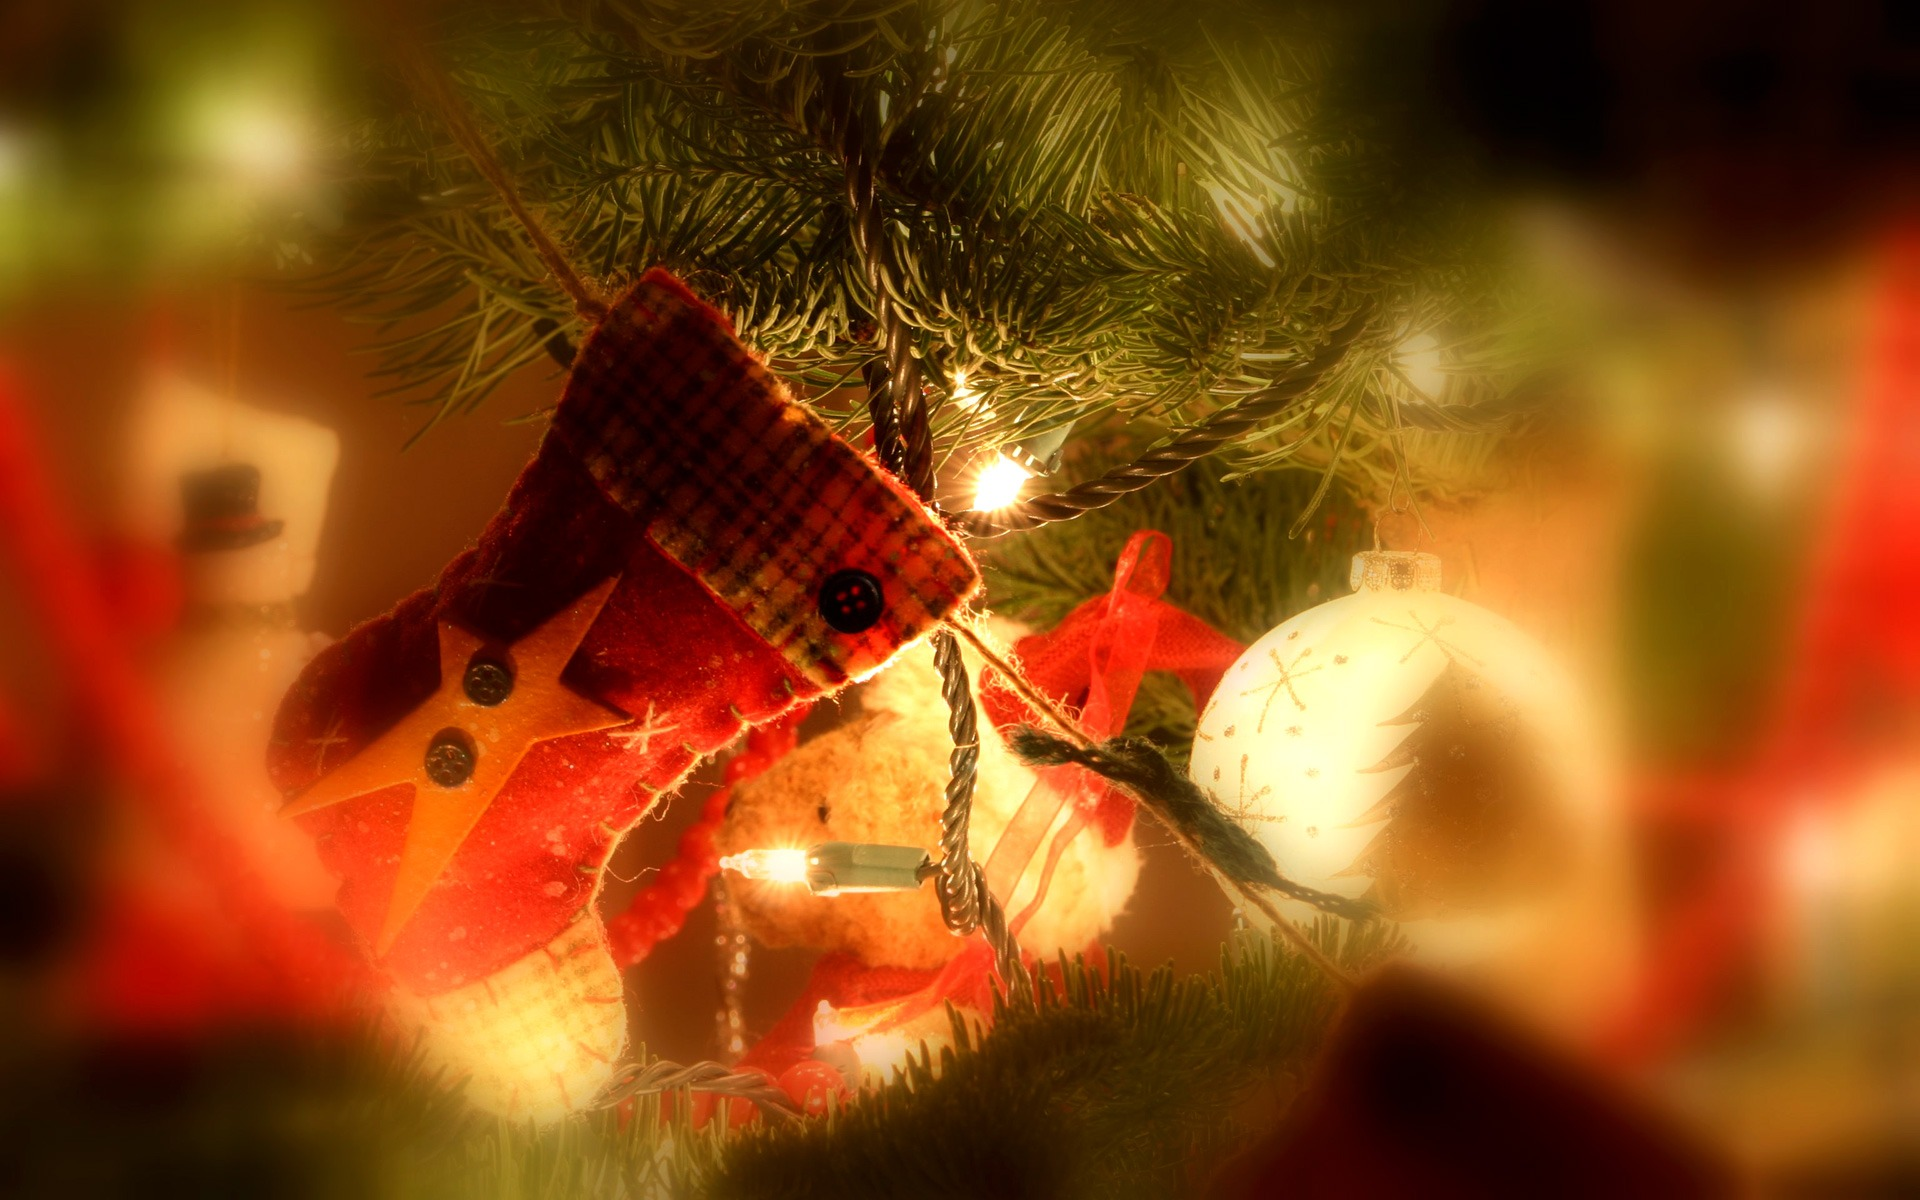 Waiting for Santa Wallpaper Christmas Holidays Wallpapers in jpg ...